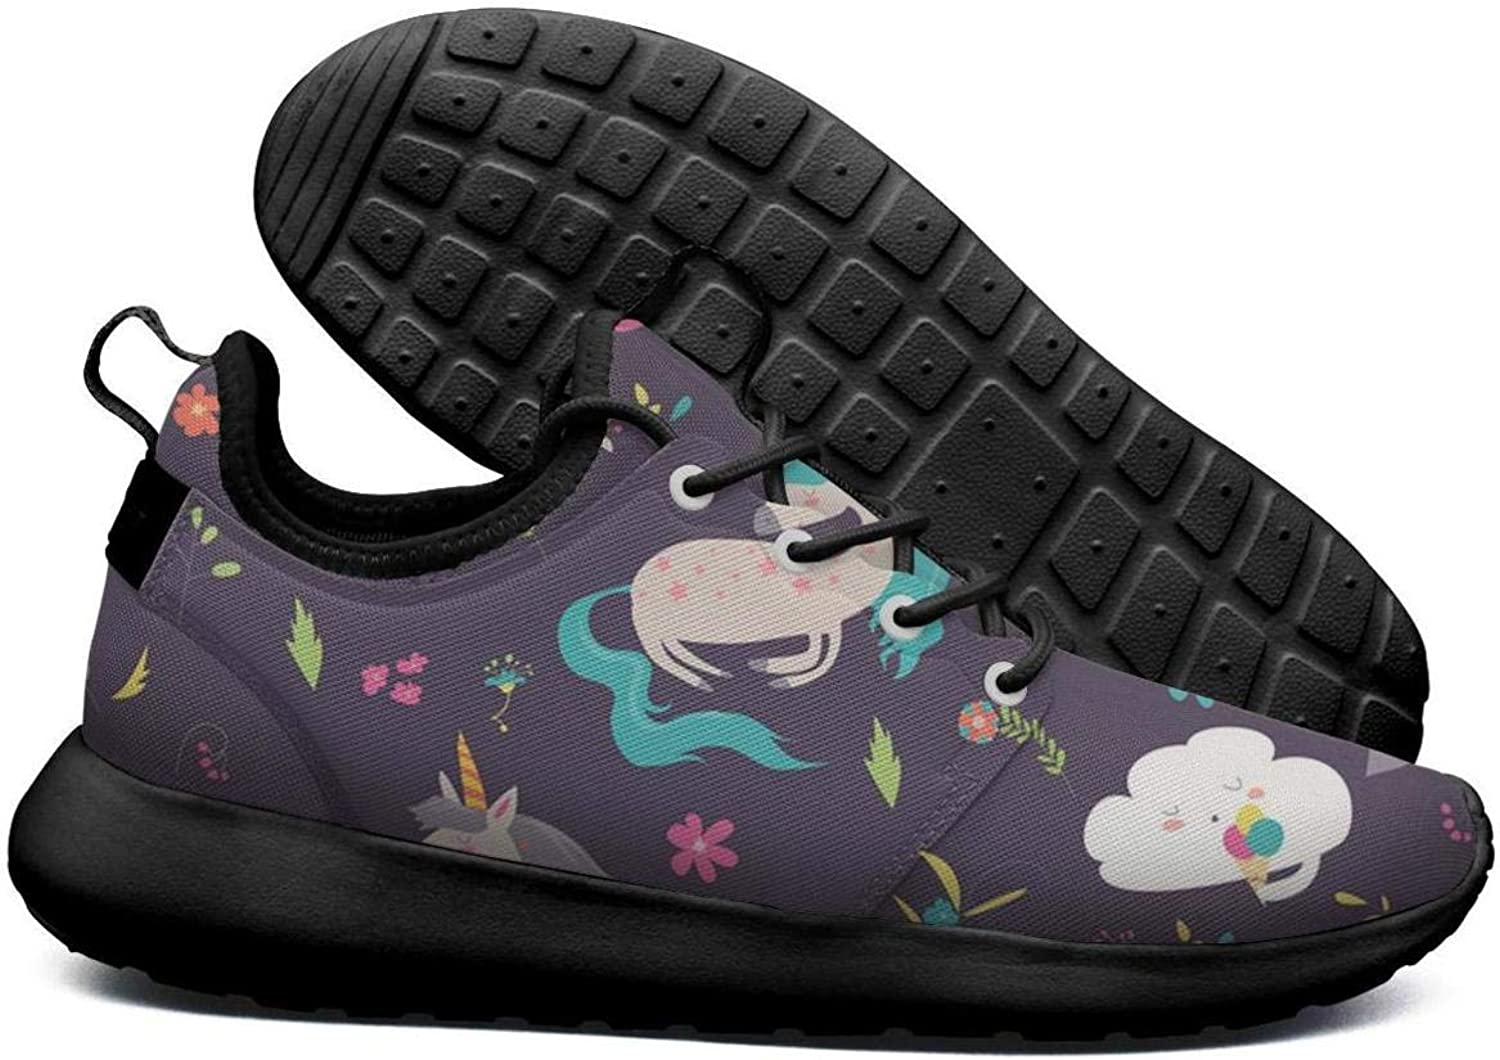 Opr7 Happy Day Unicorn Rainbow Running shoes Lightweight for Women Sneaker Lace-up Breathable